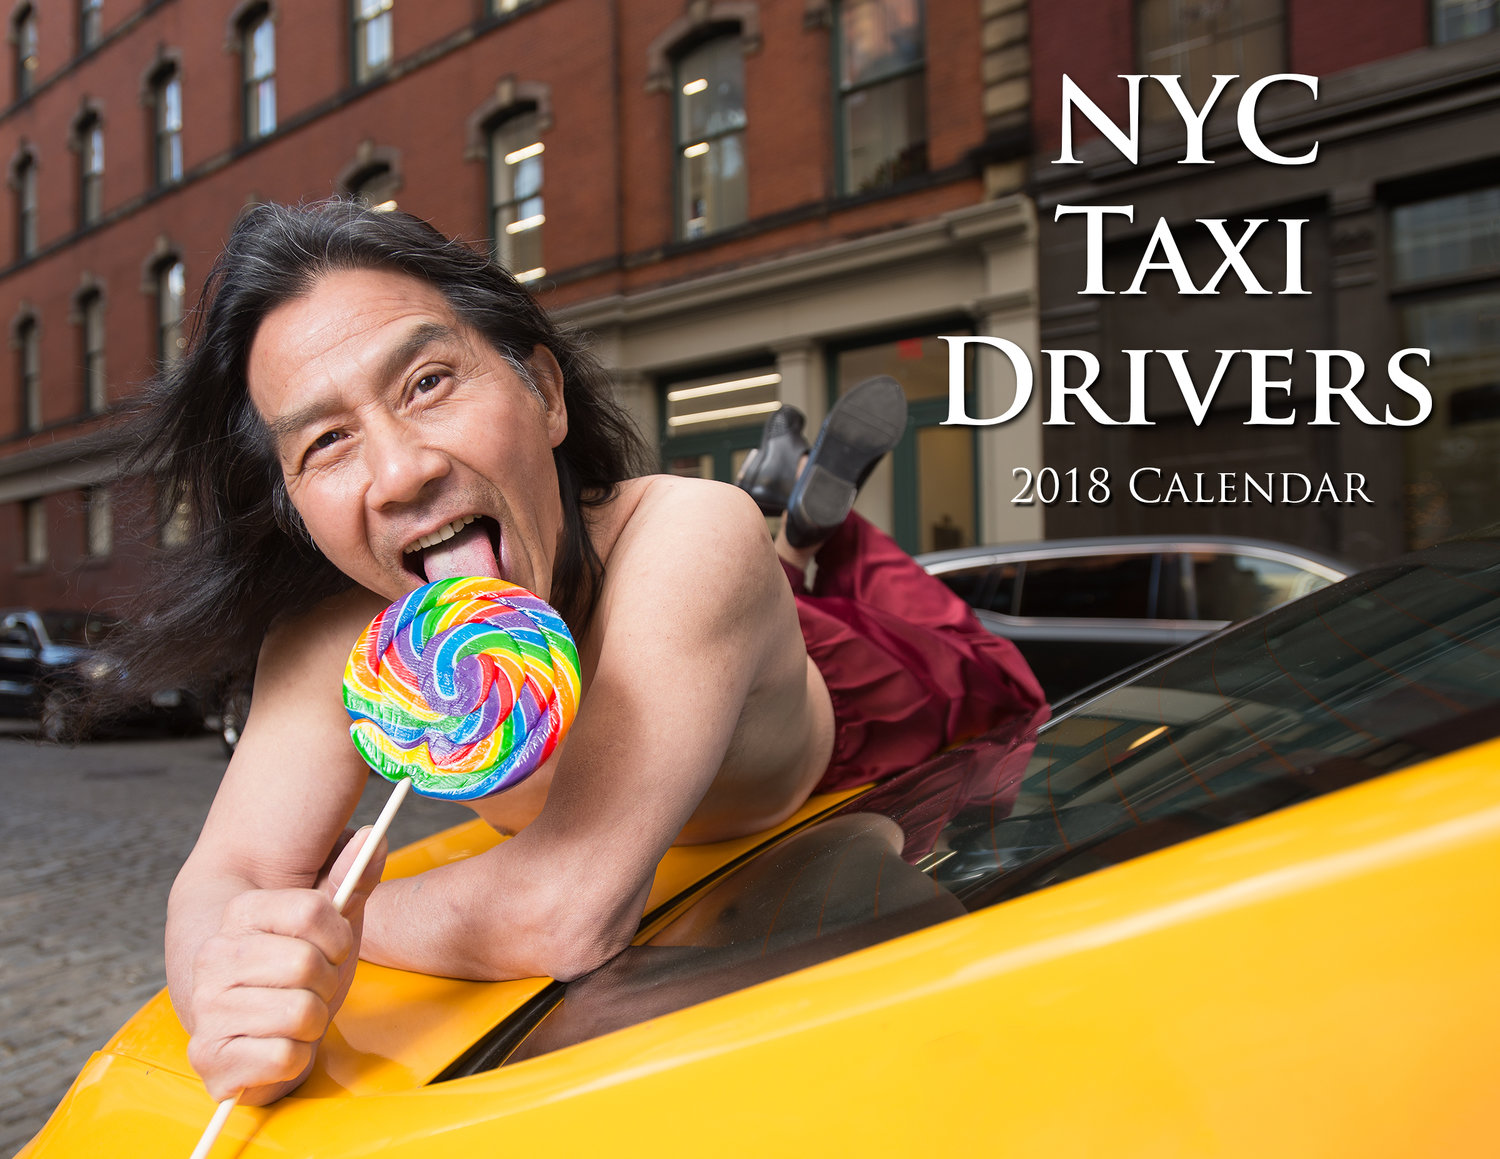 All hail! NYC taxi drivers go all out for 2018 calendar | abc13.com